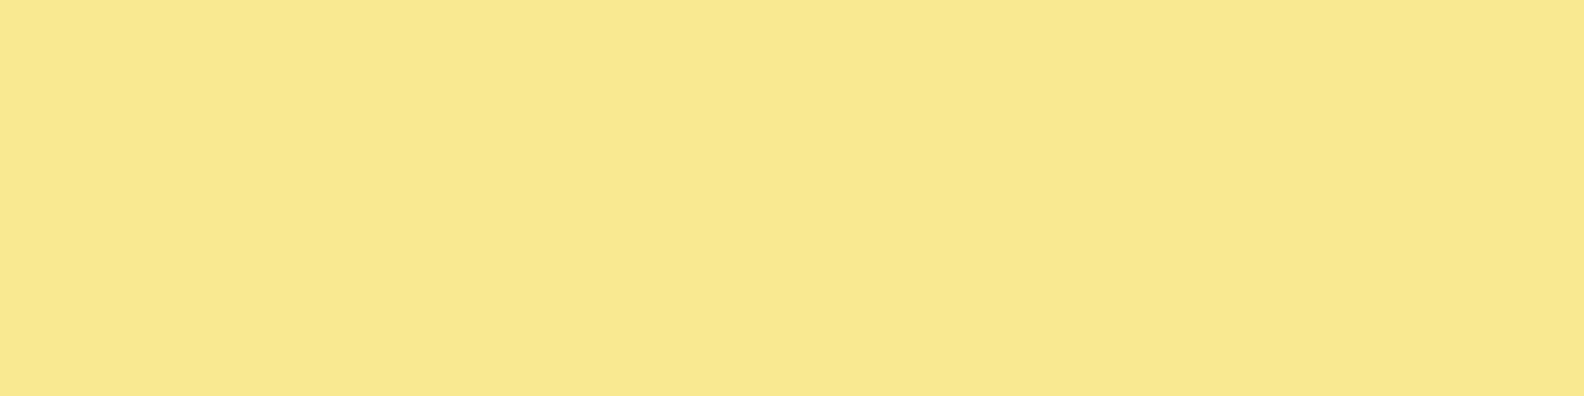 1584x396 Flavescent Solid Color Background